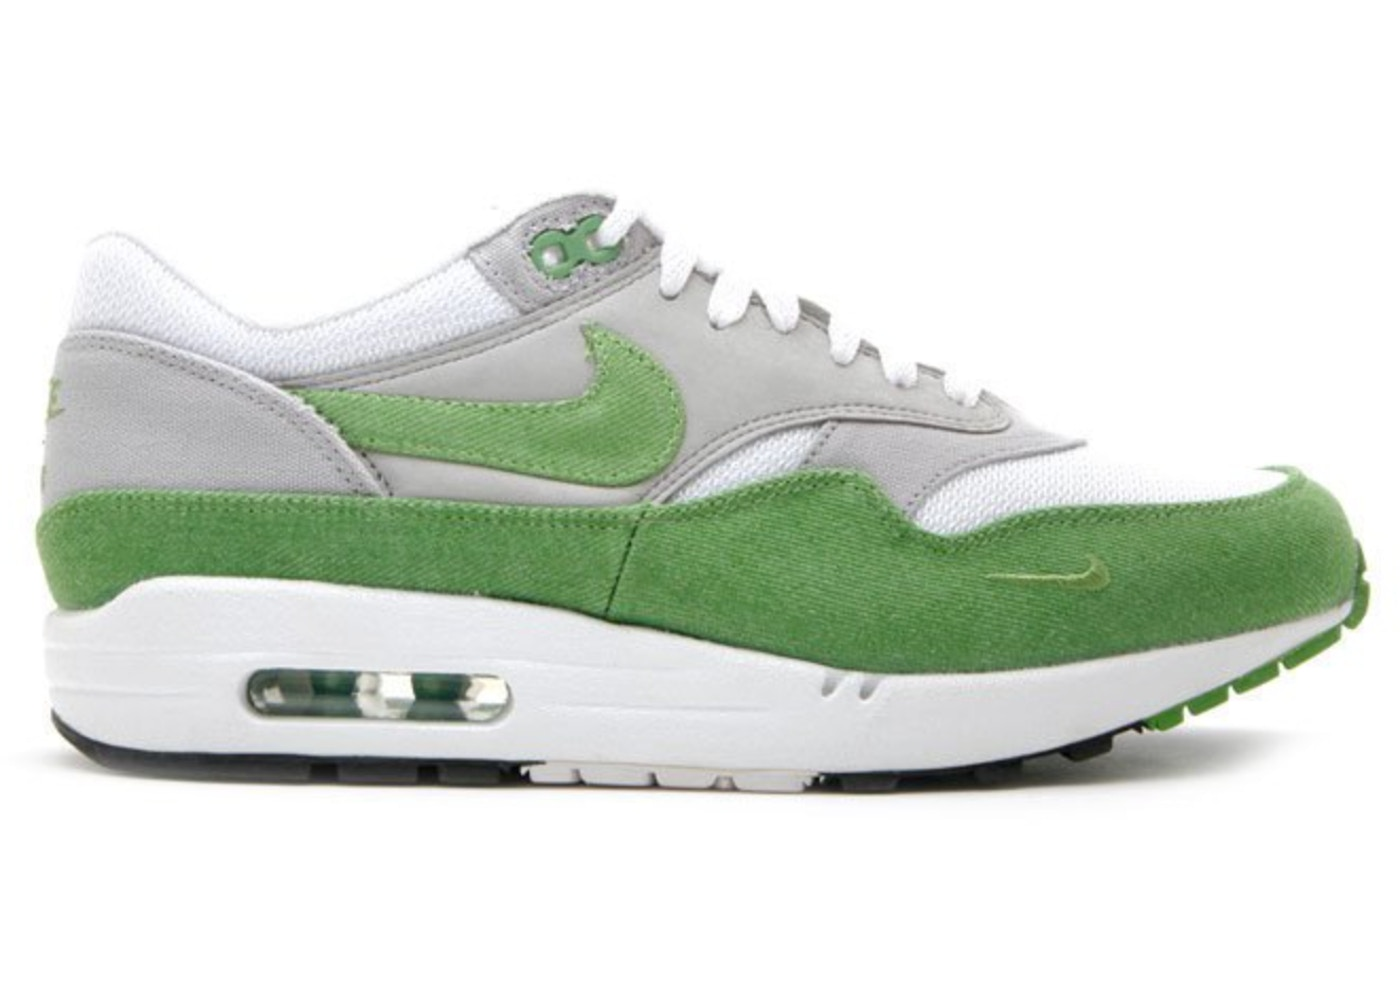 sports shoes c396c 5fabe Air Max 1 Patta 5th Anniv Green - 366379-100